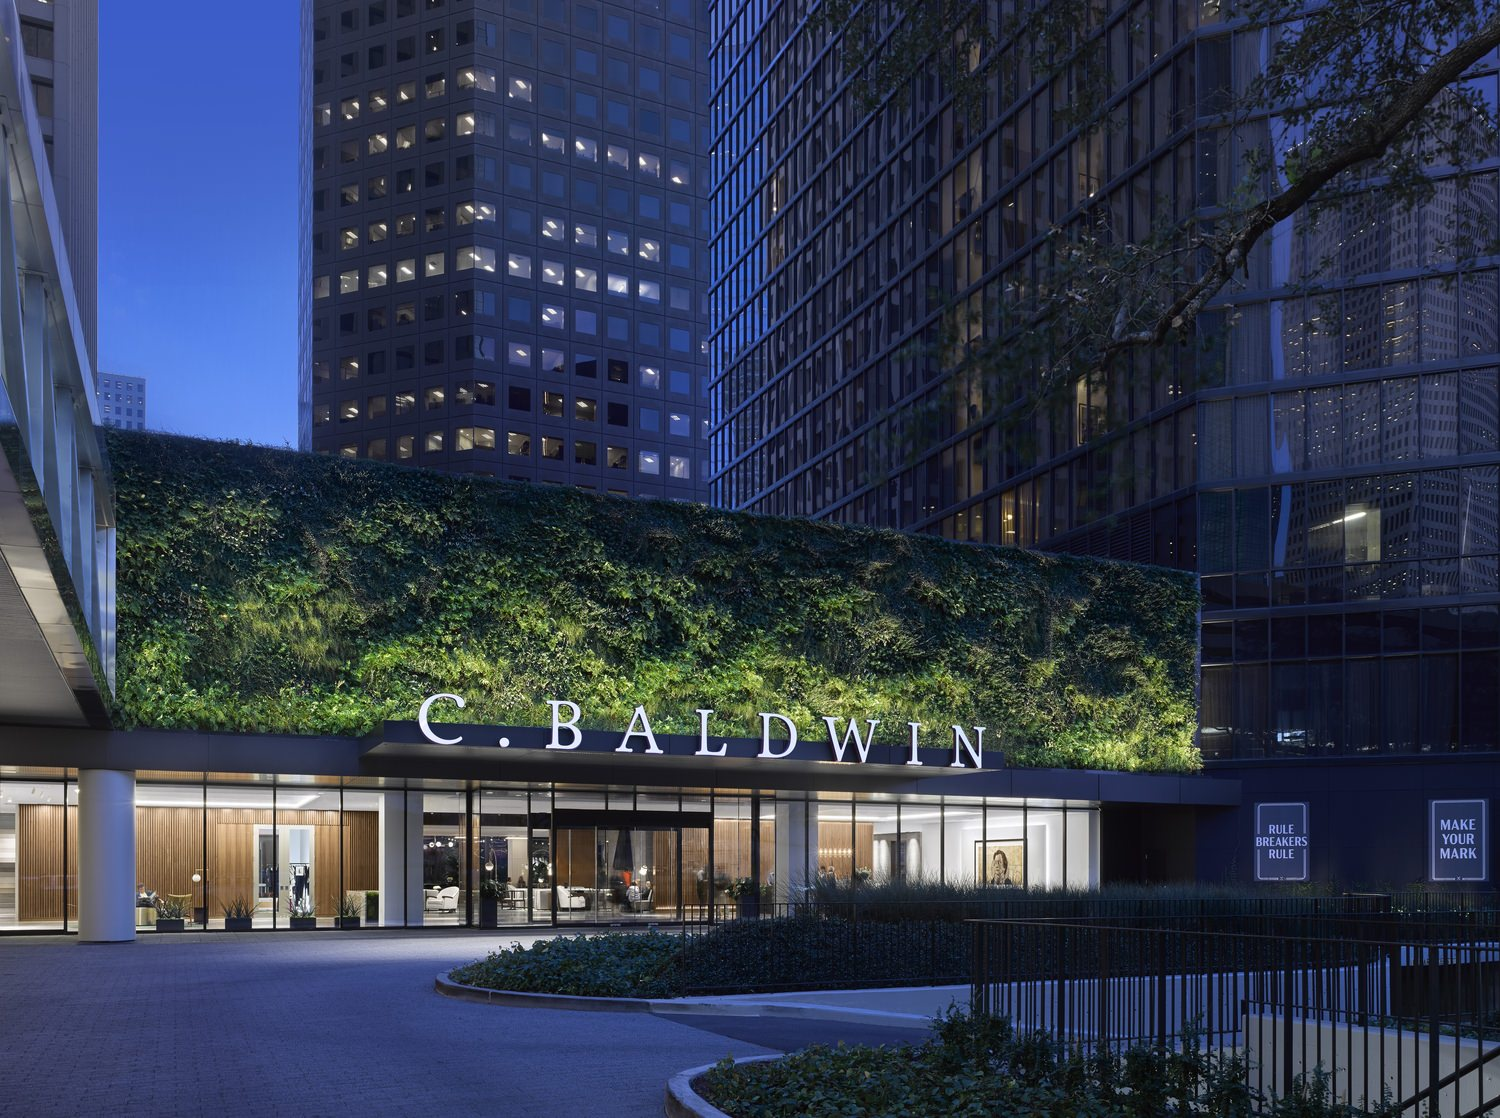 A building with a C. Baldwin logo in the front of it and there is a lot of plants that are around the sign area.